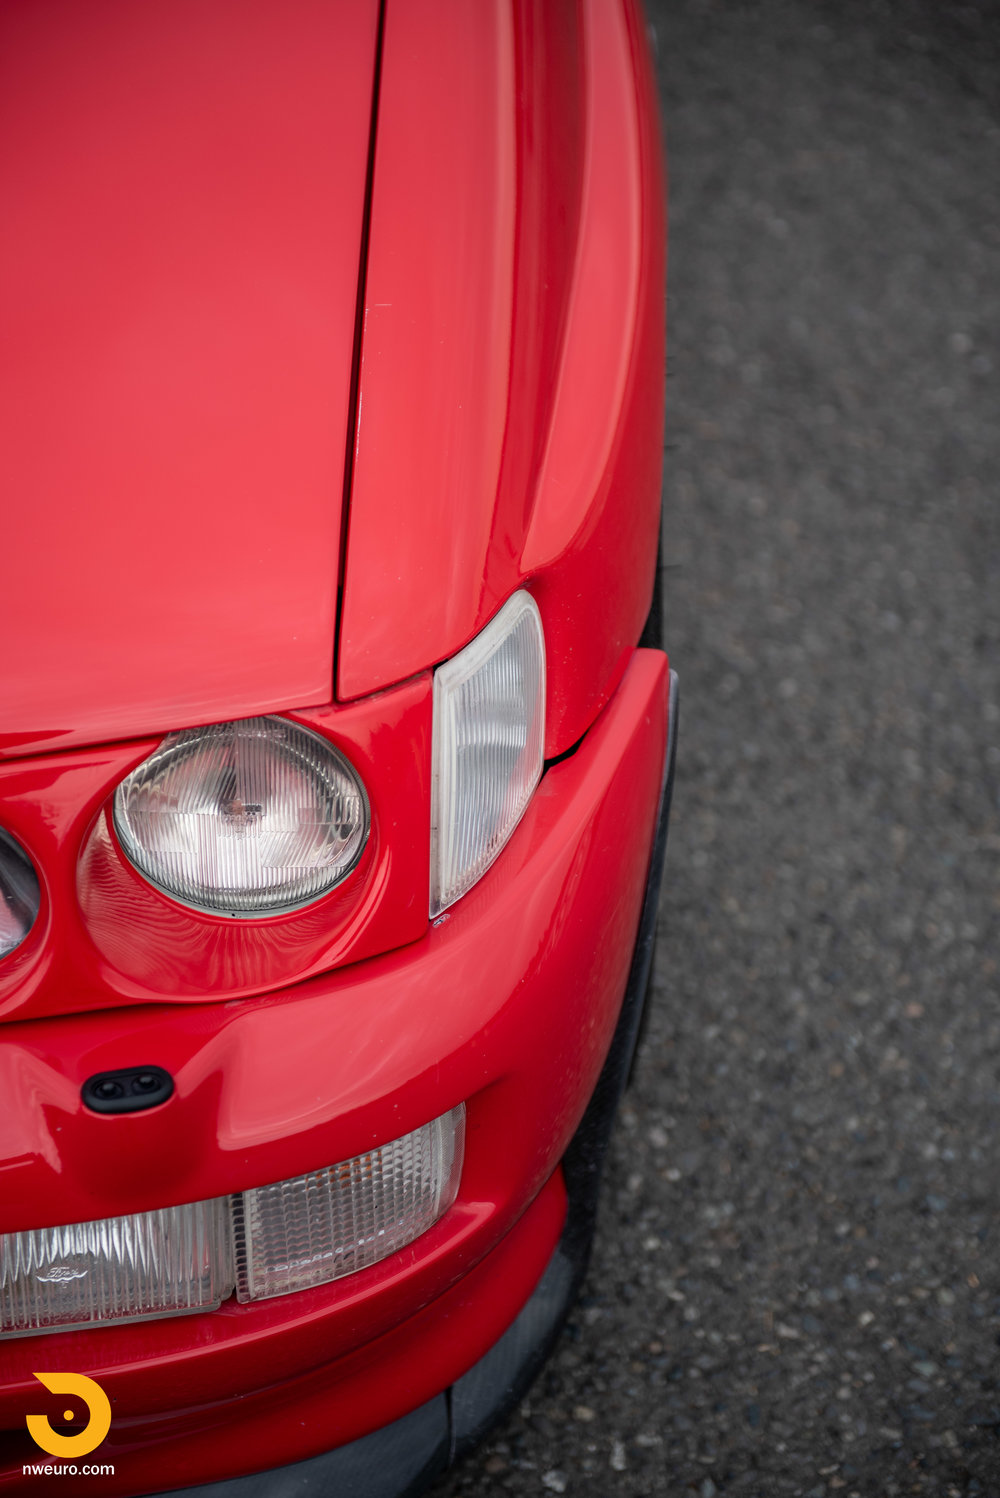 1993 Ford Escort Cosworth RS Red-10.jpg